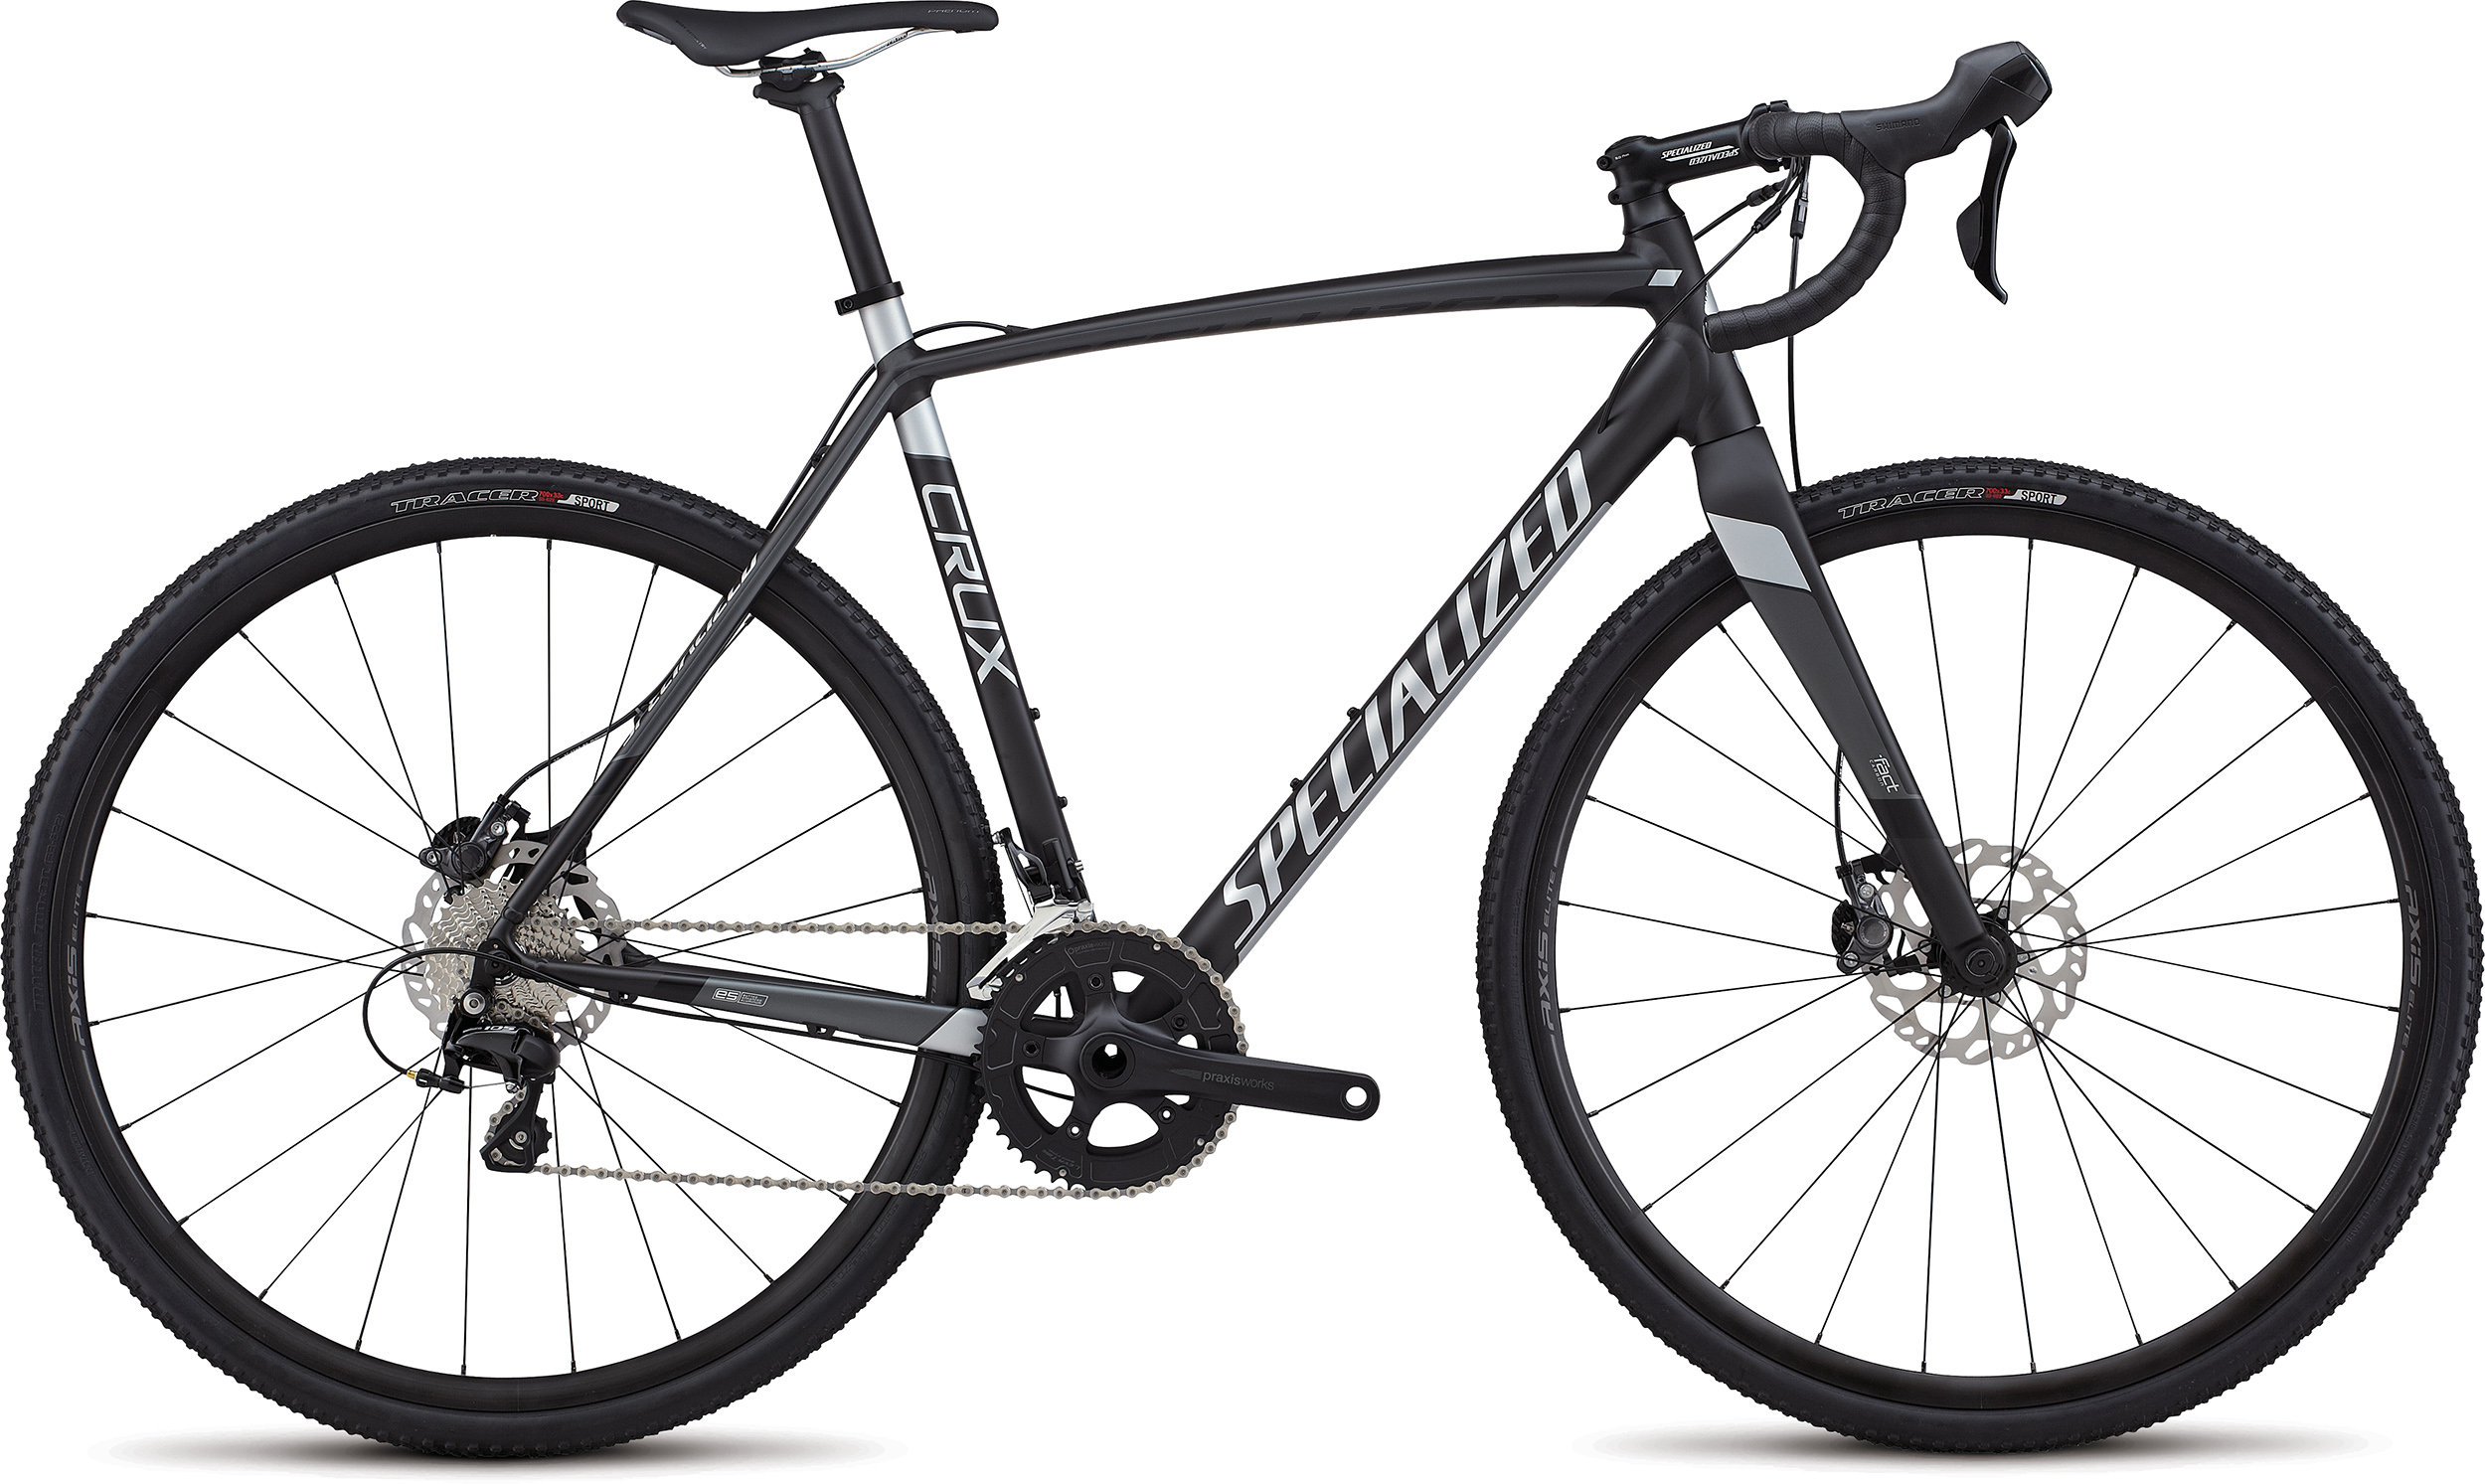 Specialized CruX Sport E5 SATIN NEARLY BLACK / CHARCOAL / FLAKE SILVER 52 - Specialized CruX Sport E5 SATIN NEARLY BLACK / CHARCOAL / FLAKE SILVER 52